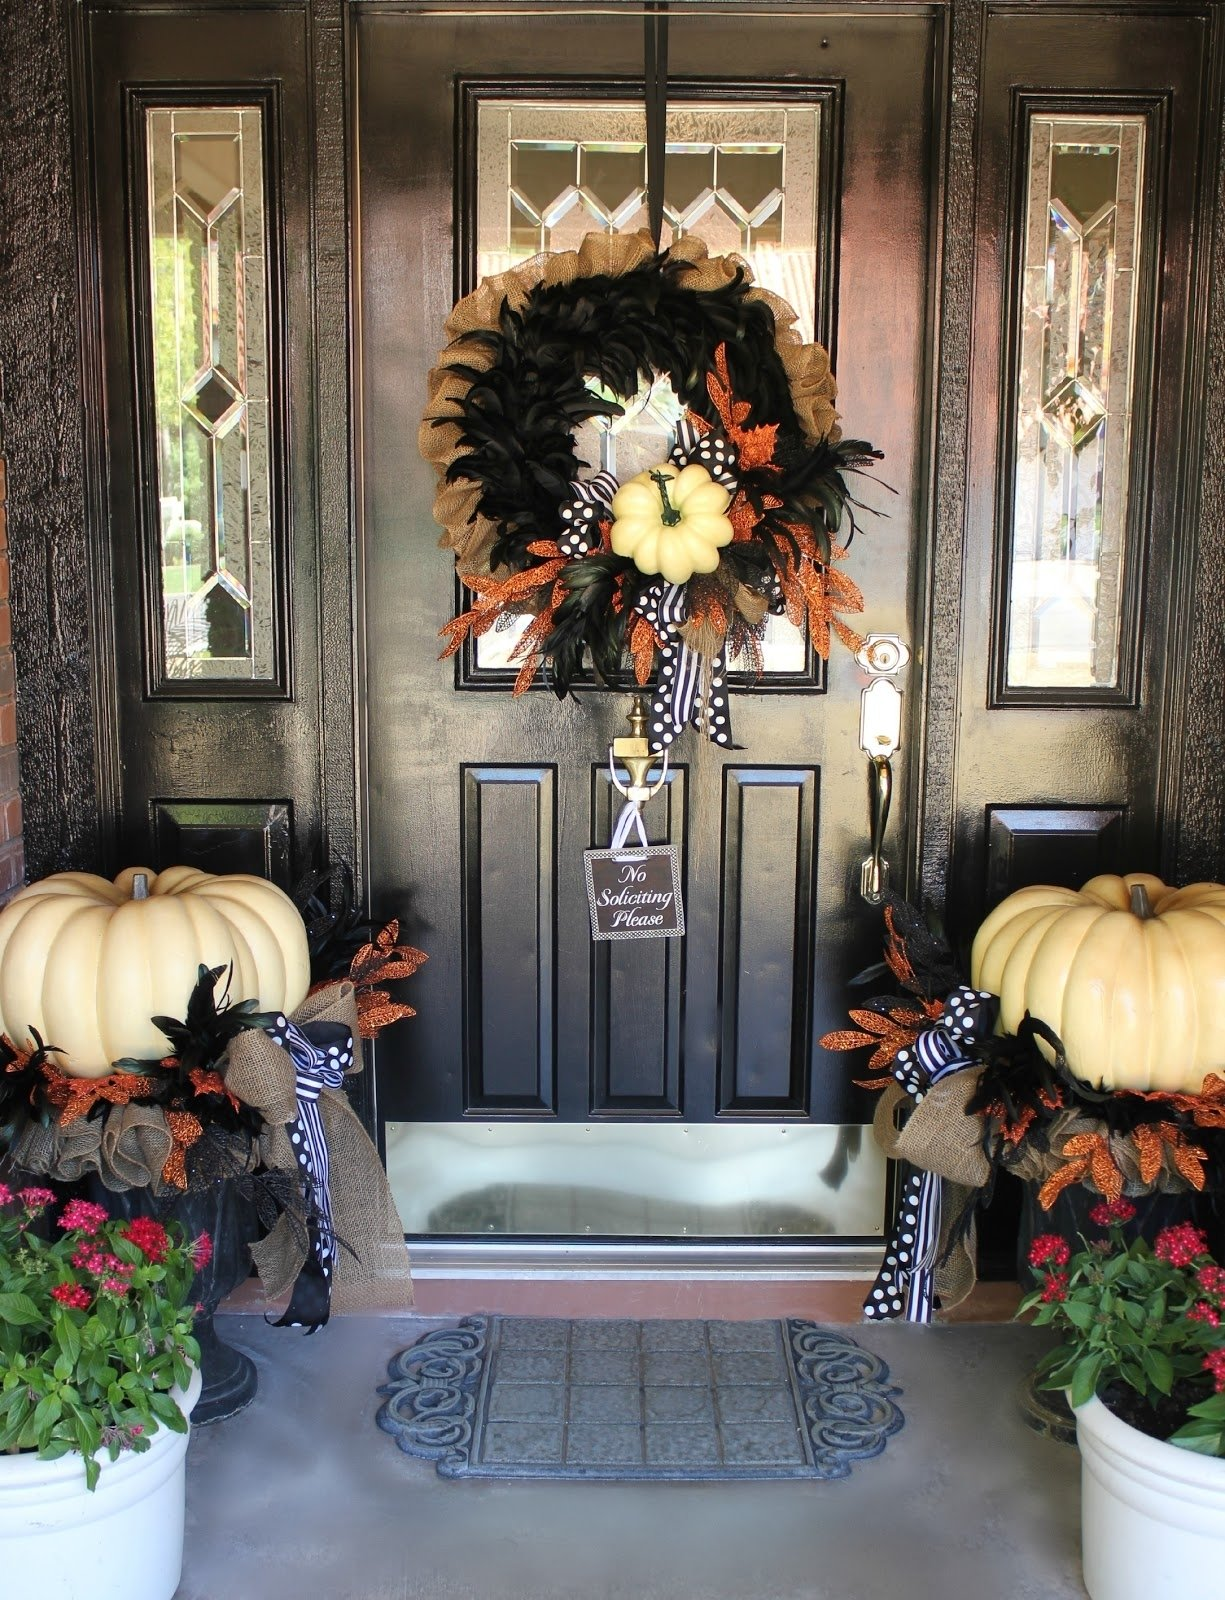 10 Lovely Front Porch Decorating Ideas For Fall 25 elegant halloween decorations ideas pumpkin wreath front fall 2020